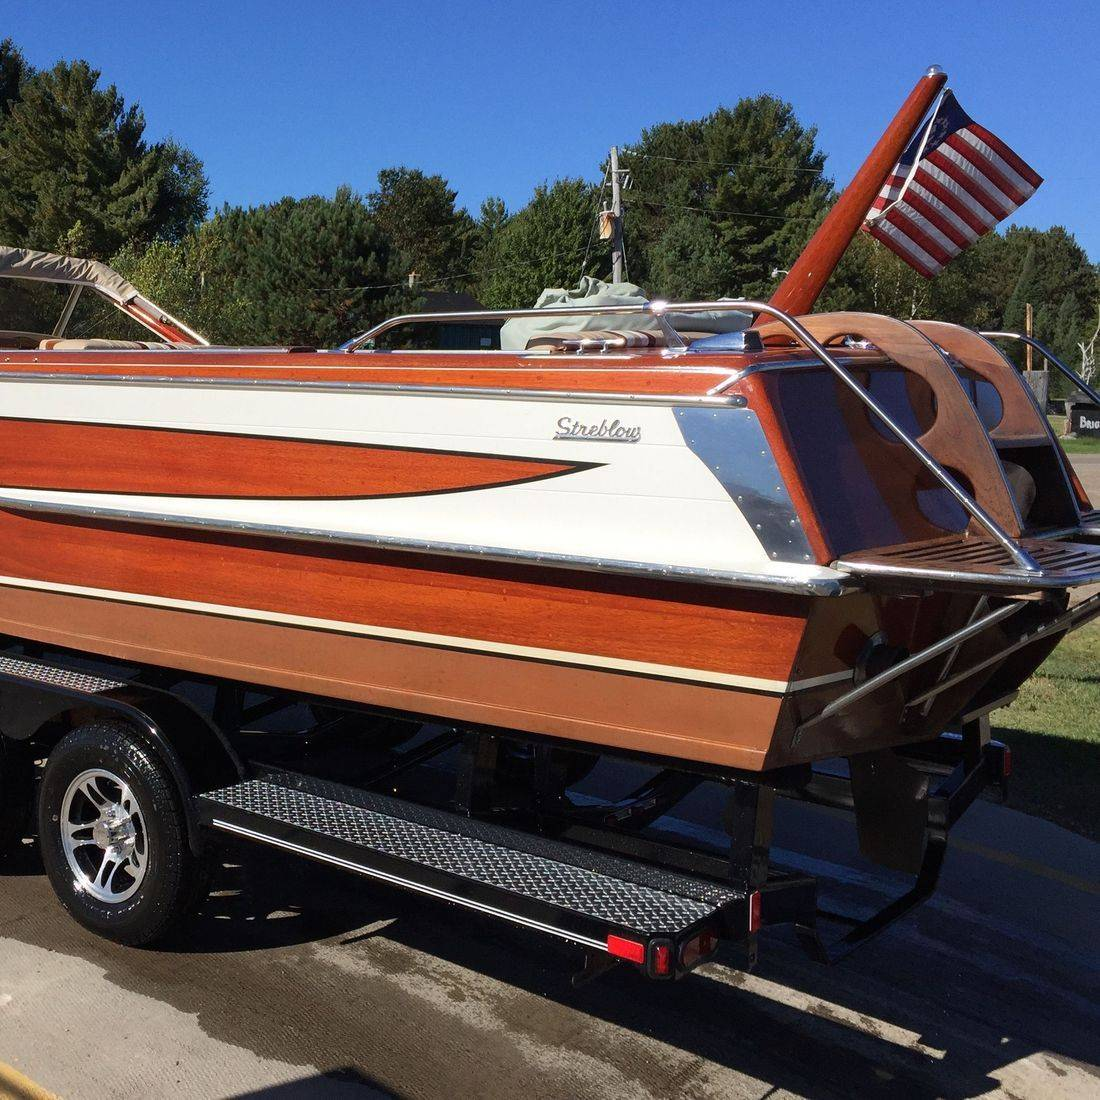 Streblow boat for sale at Bergersen Boat